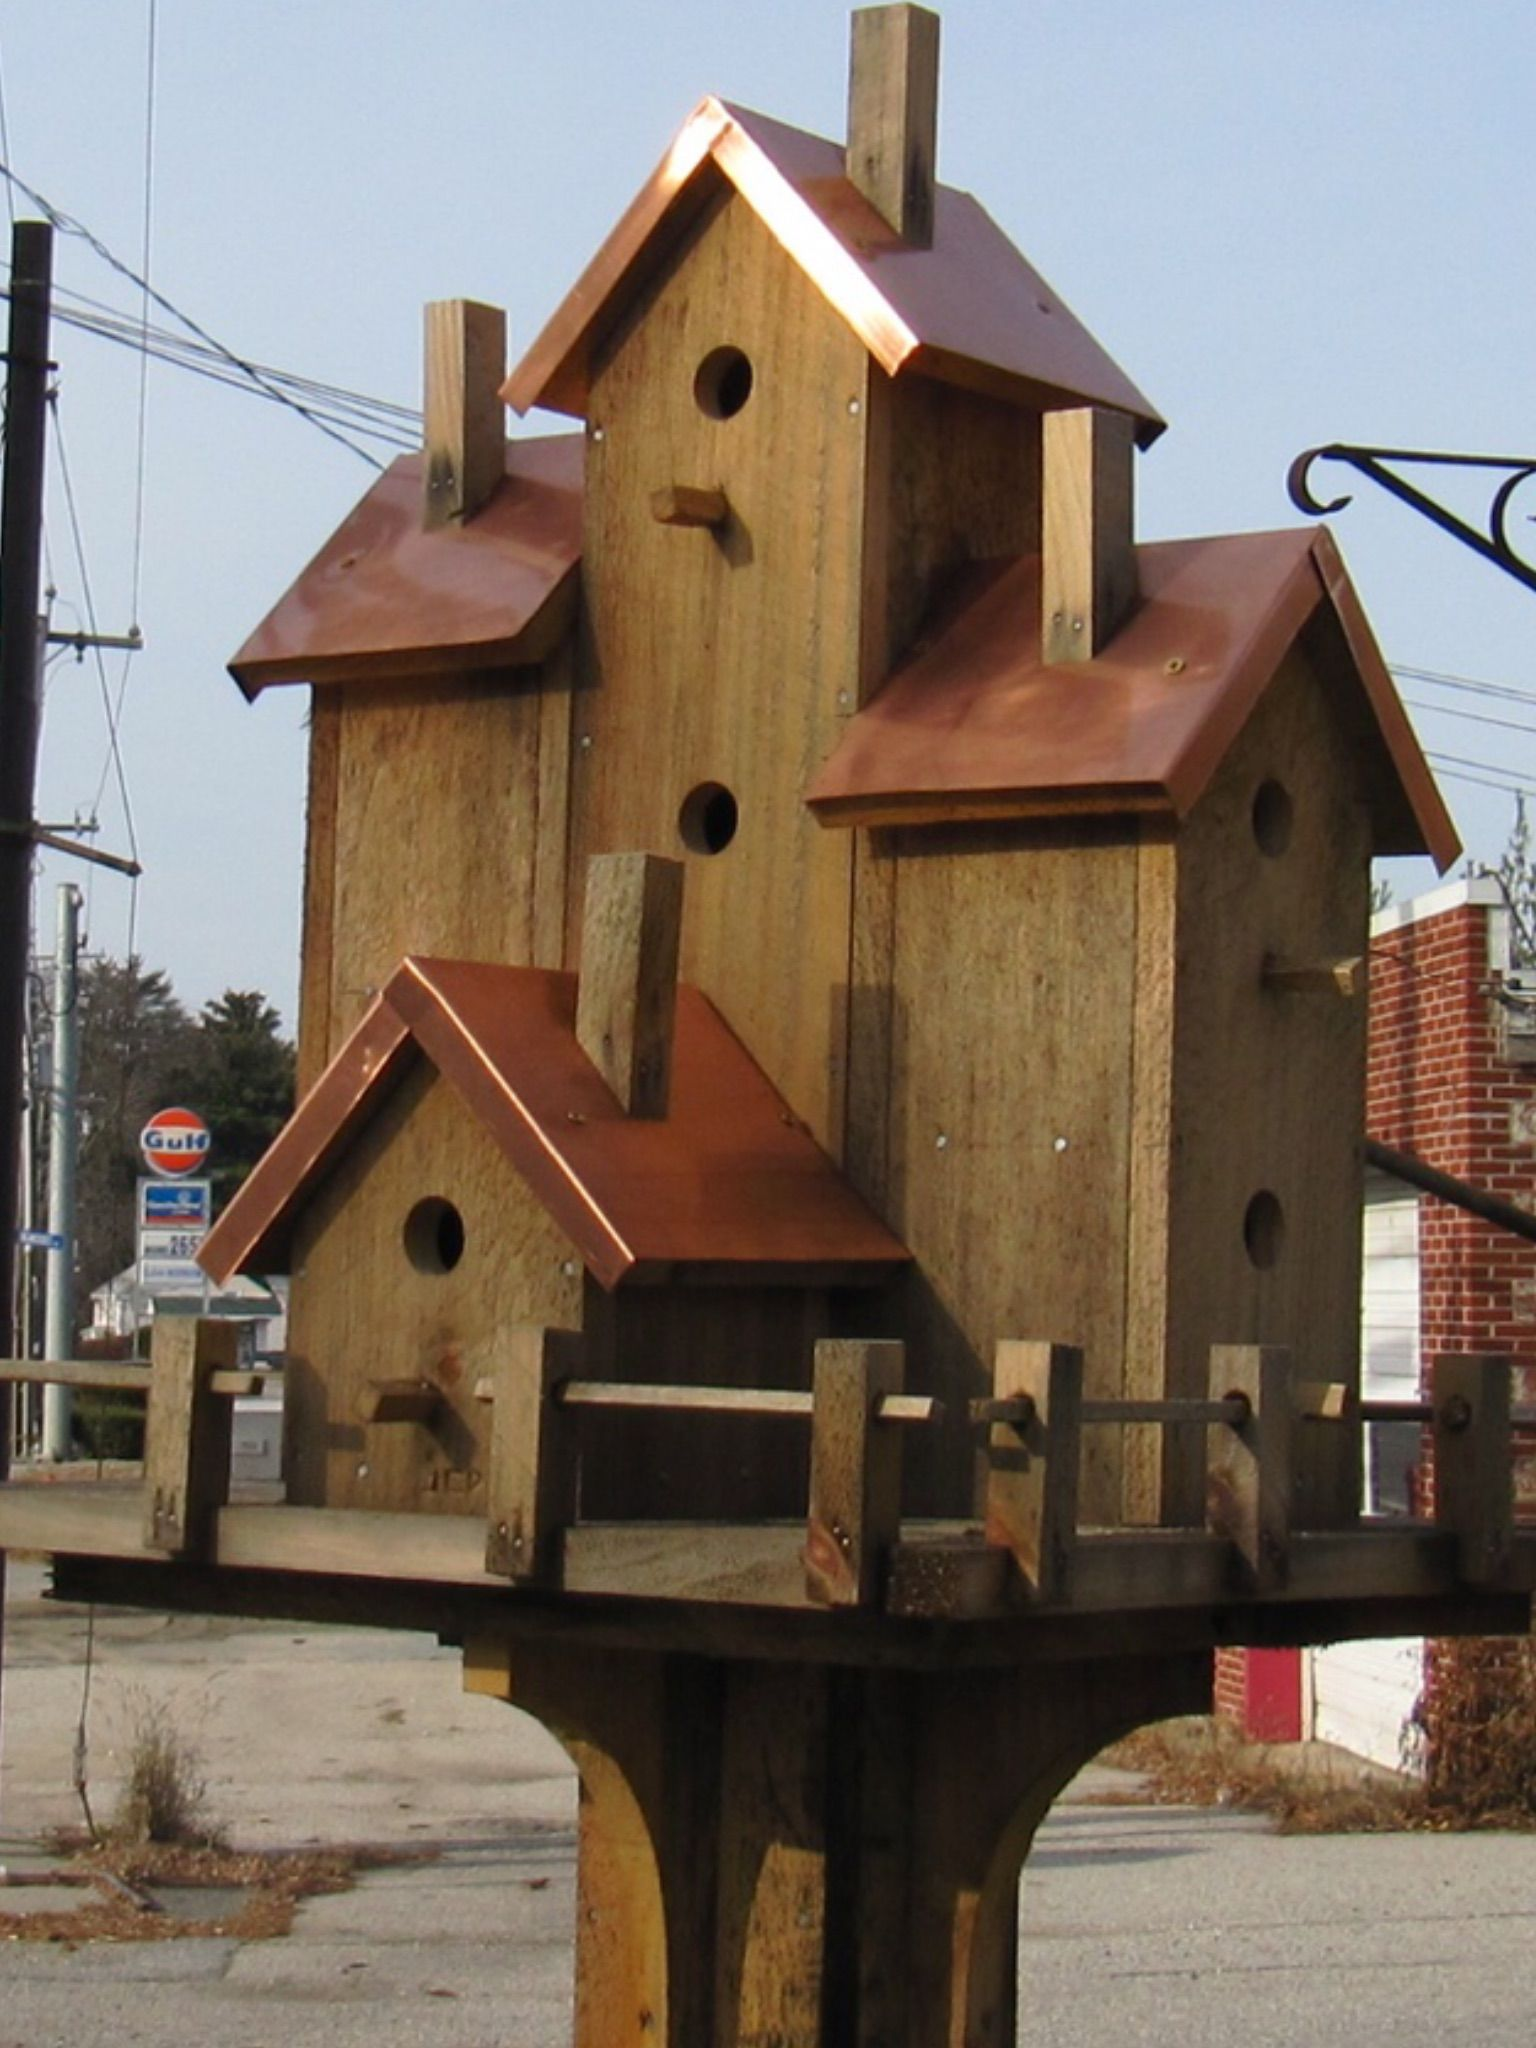 Pin by Jim Donnelly on Bird houses/Squirrel feeders | Pinterest ...